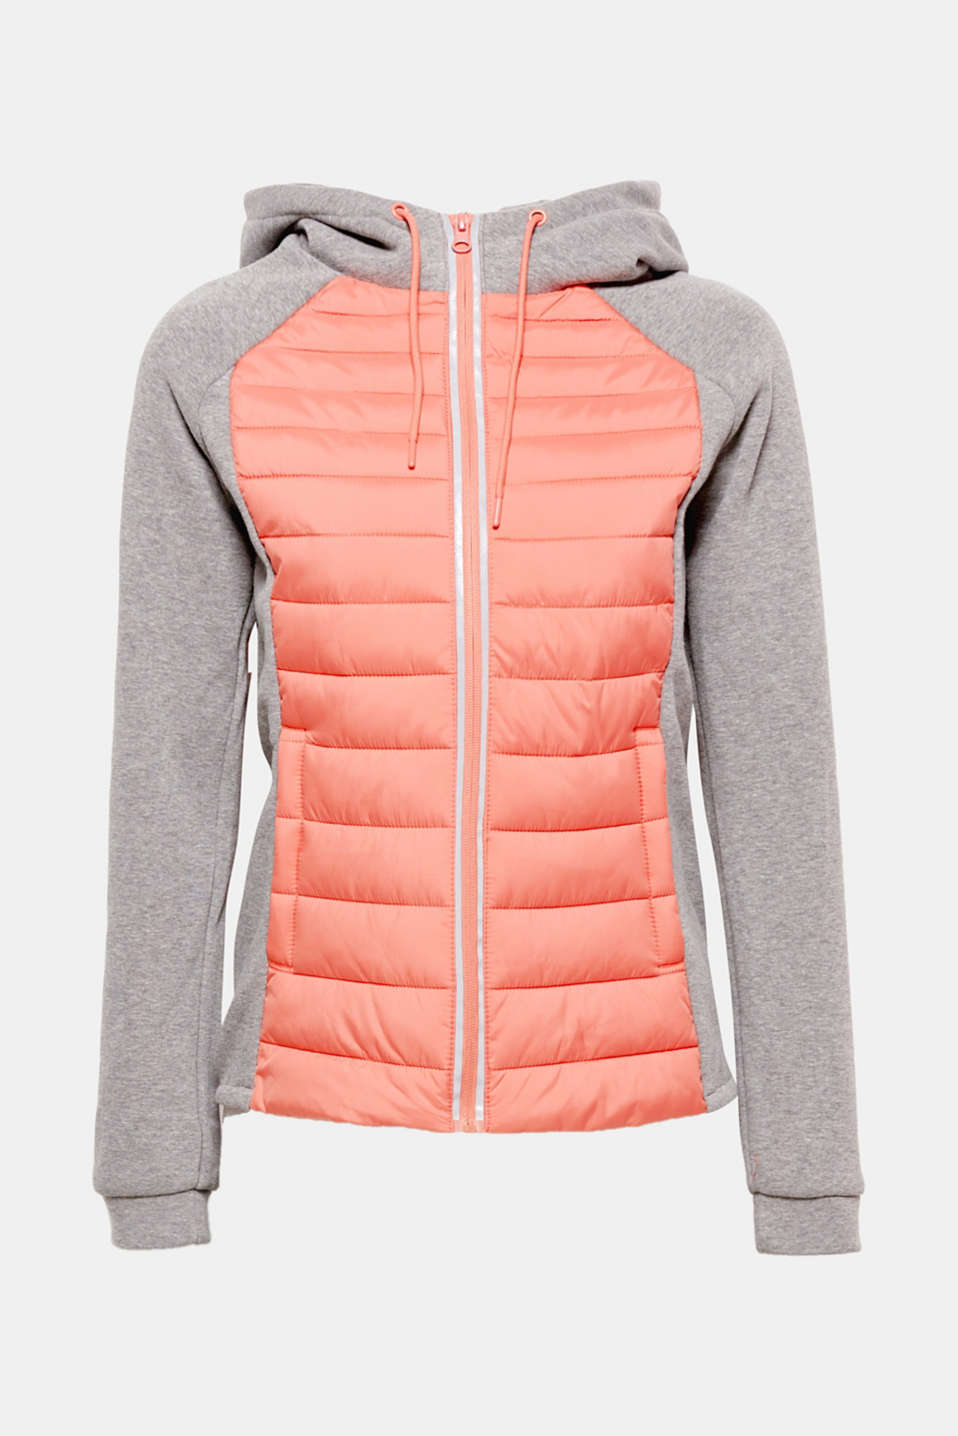 This lightweight quilted jacket featuring jersey sections is perfect for sporty outdoor activities between seasons!